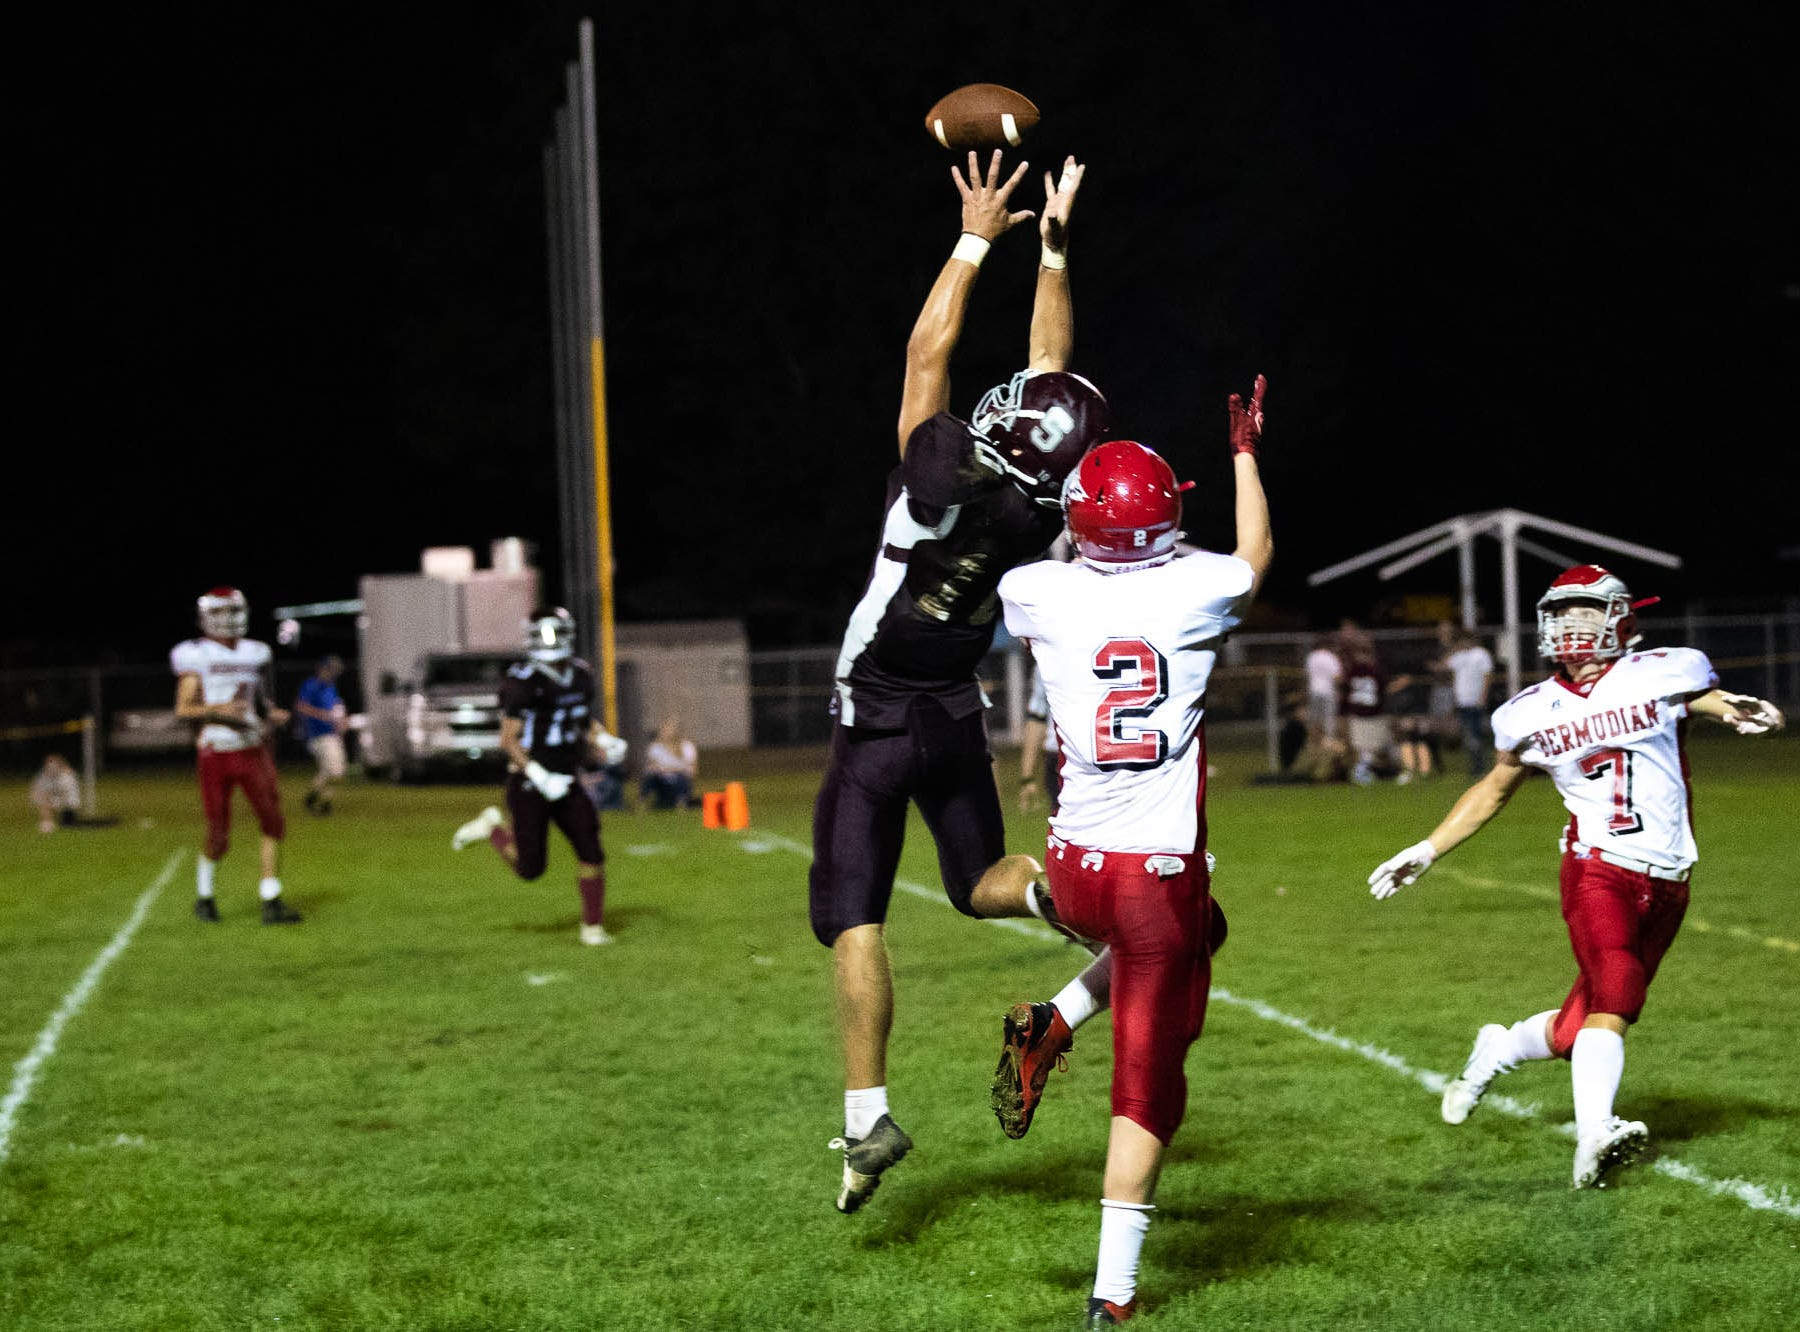 Shippensburg's Nick Gustafson (10) is incomplete on a pass during a football game between Shippensburg and Bermudian Springs, Friday, Sept. 7, 2018, at Shippensburg High School. The Shippensburg Greyhounds defeated the Bermudian Springs Eagles 31-17.